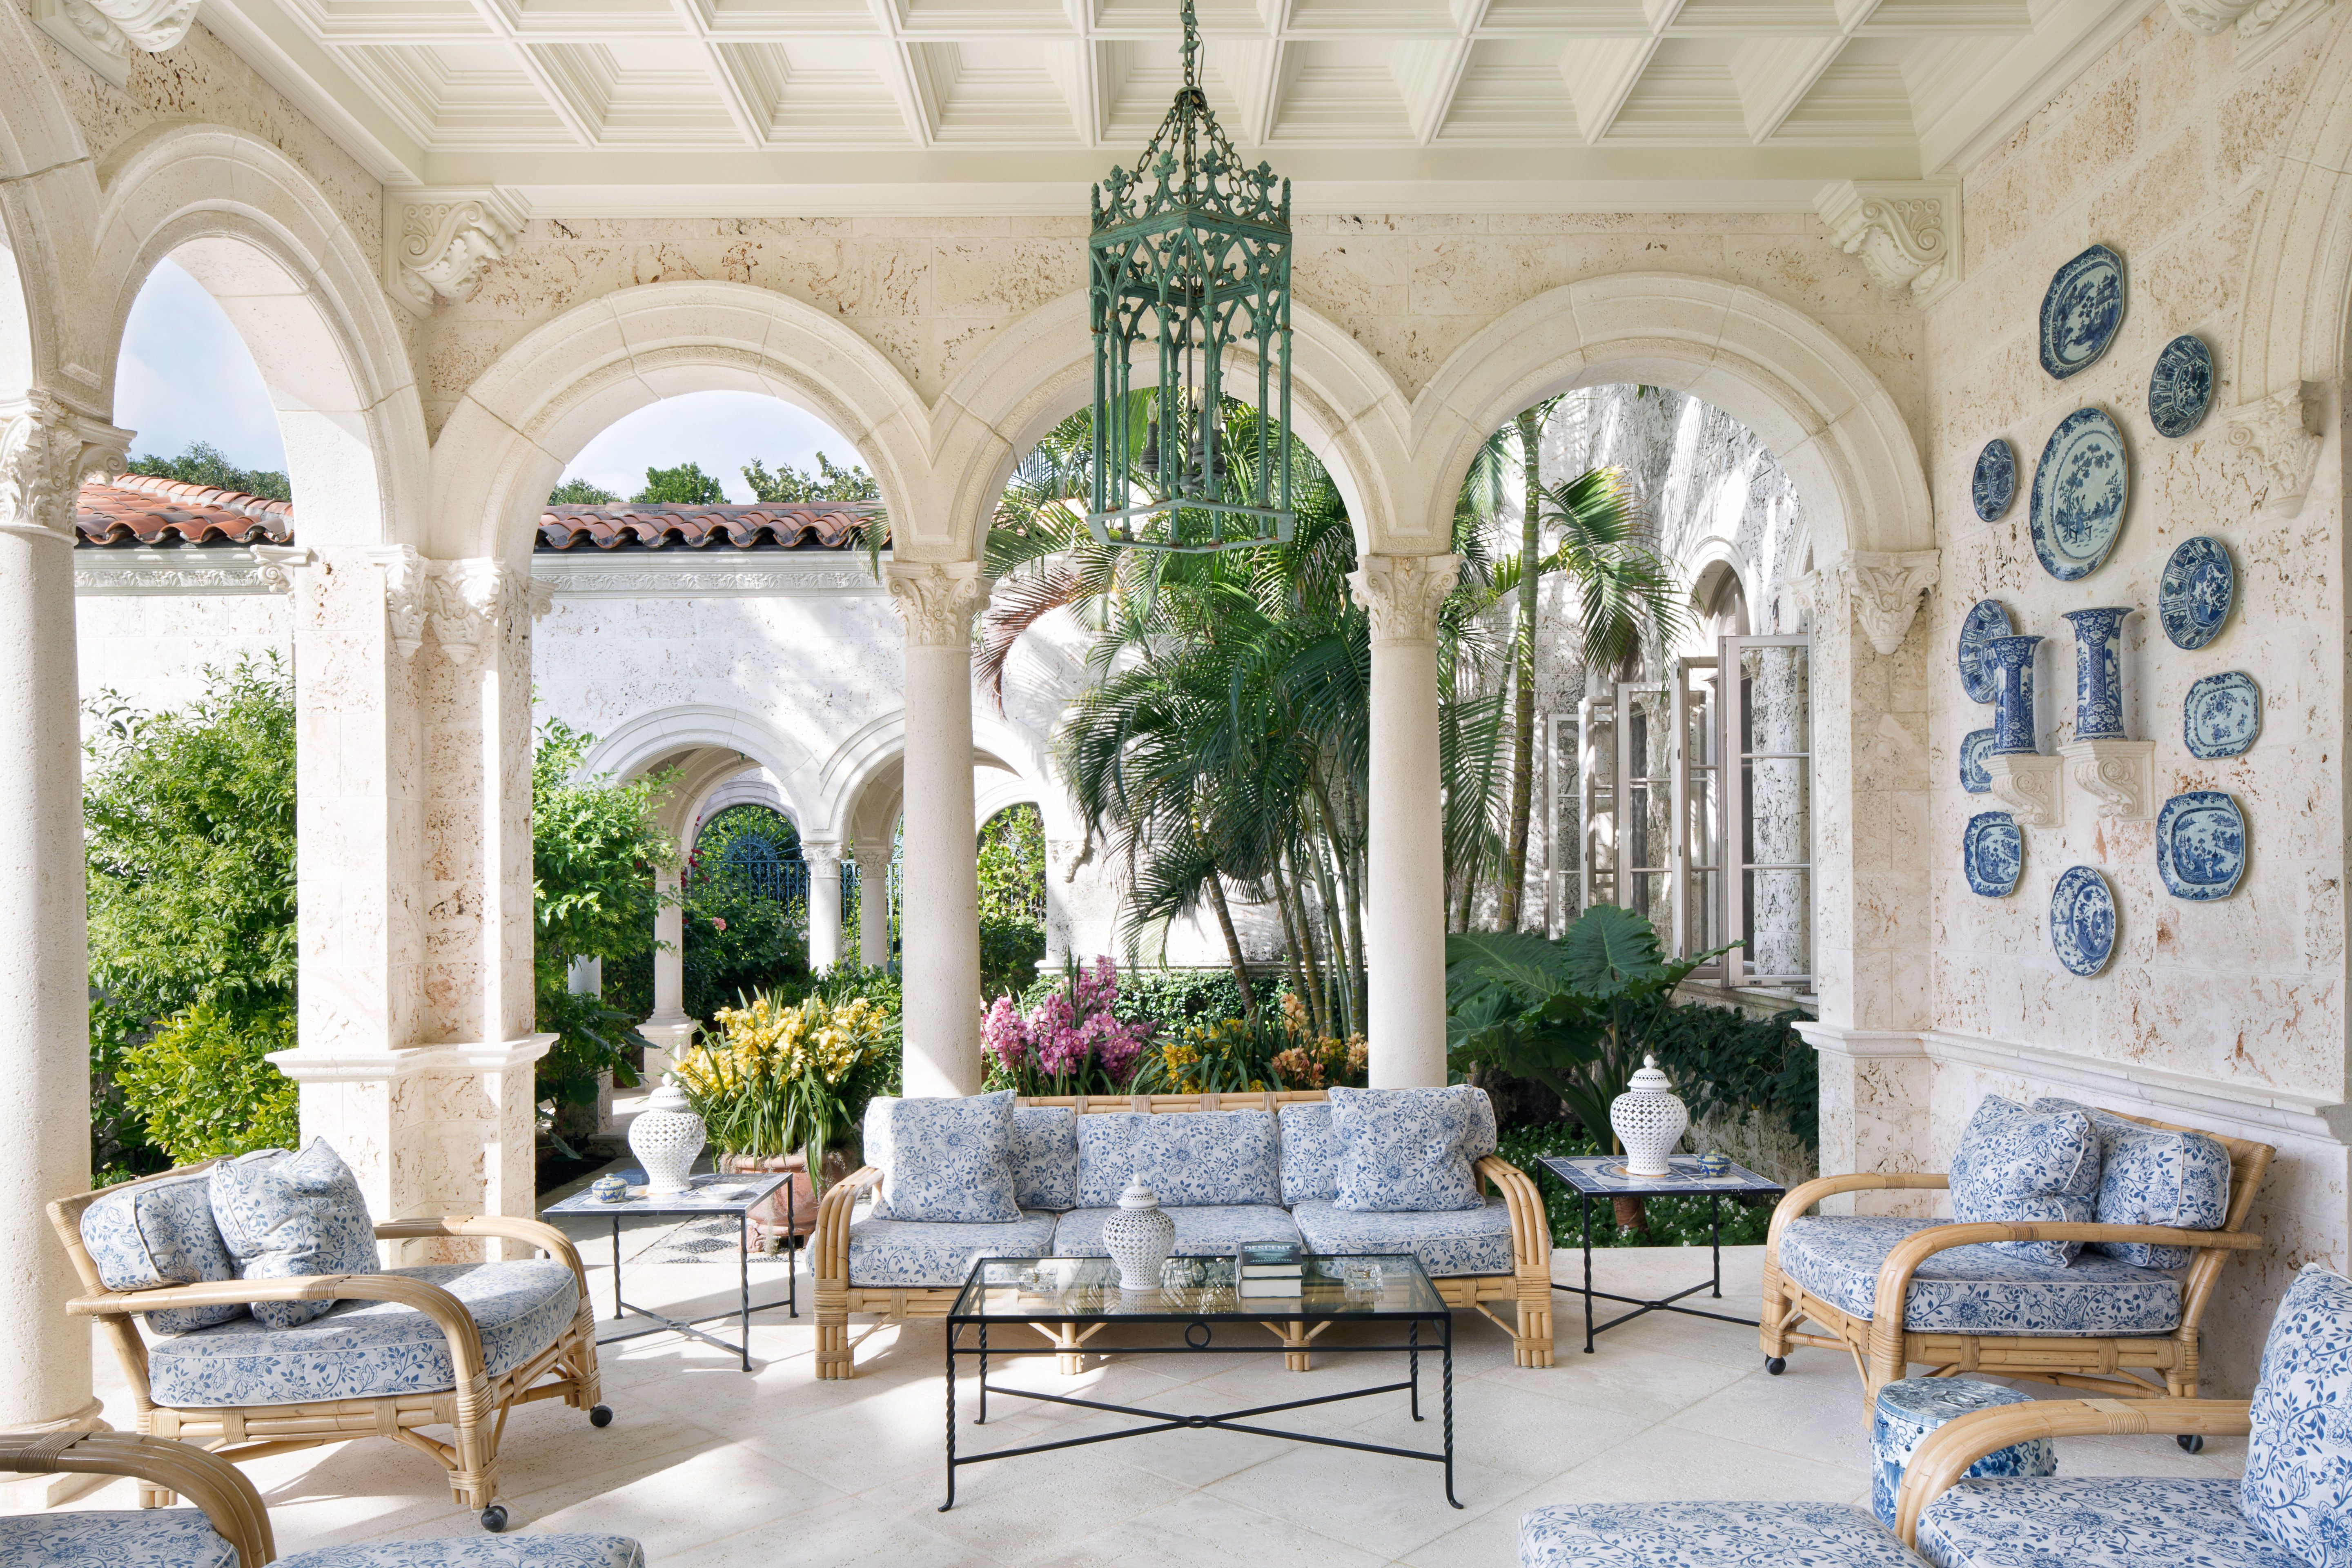 Decor Inspiration Palm Beach Chic Photos  Architectural Digest